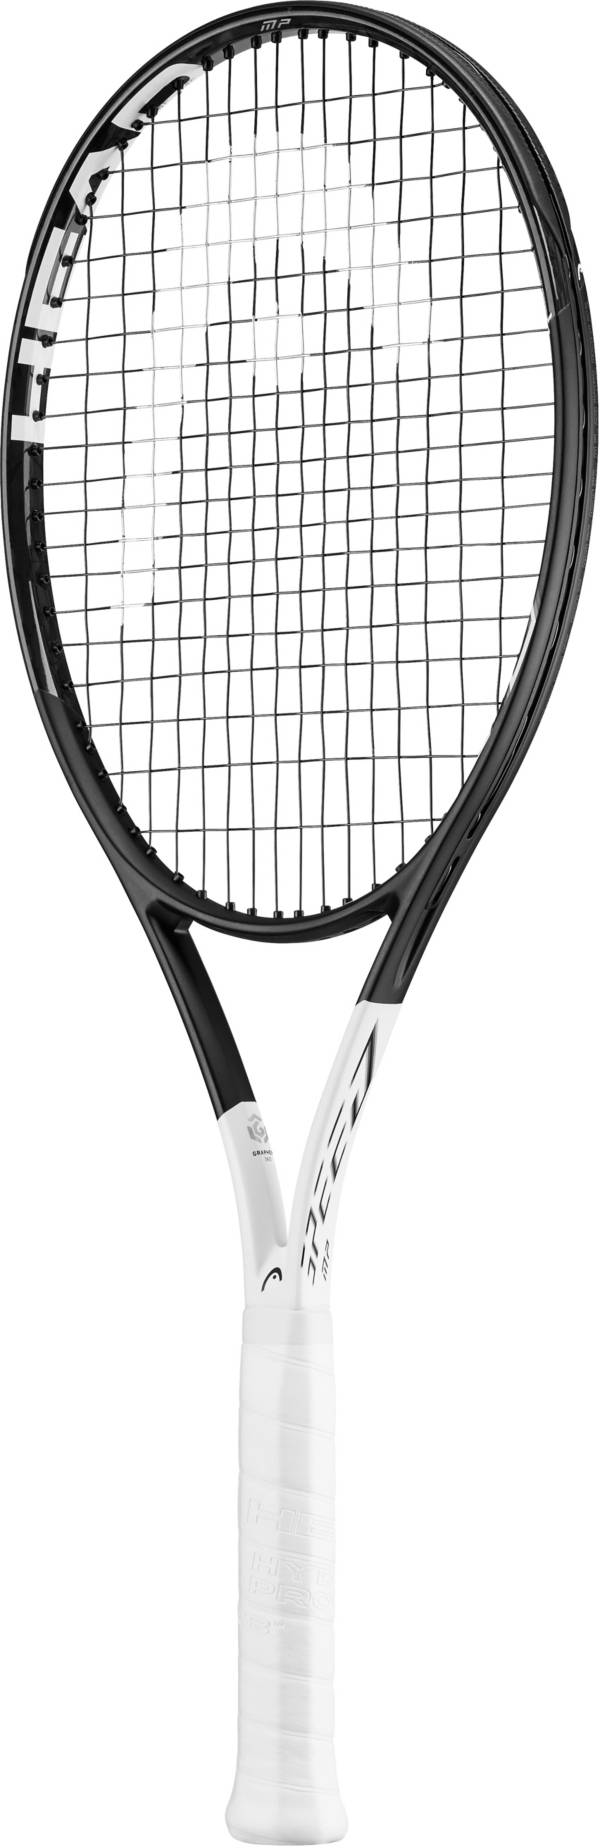 Head Graphene 360 Speed MP Tennis Racquet product image